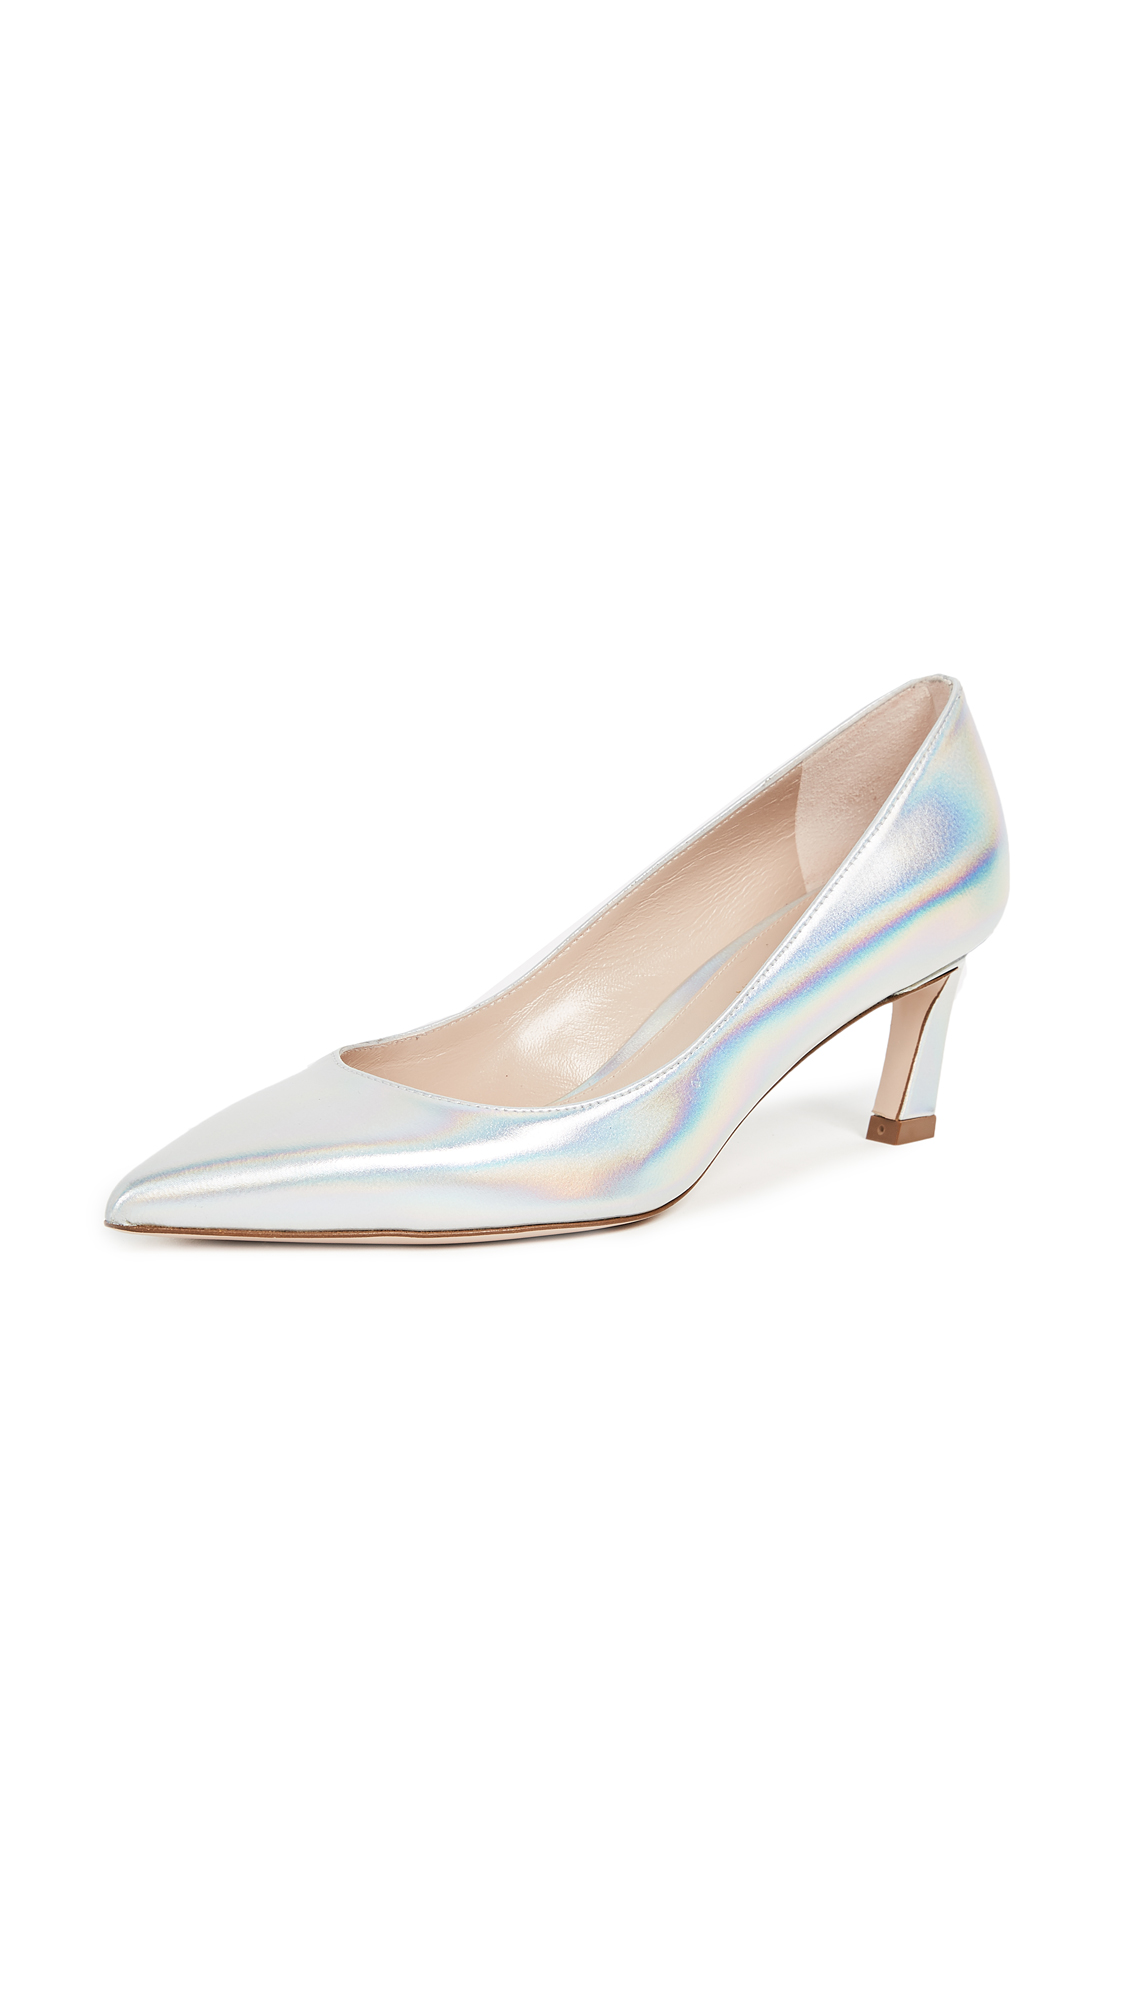 Stuart Weitzman Chicory Pumps - Moonshine